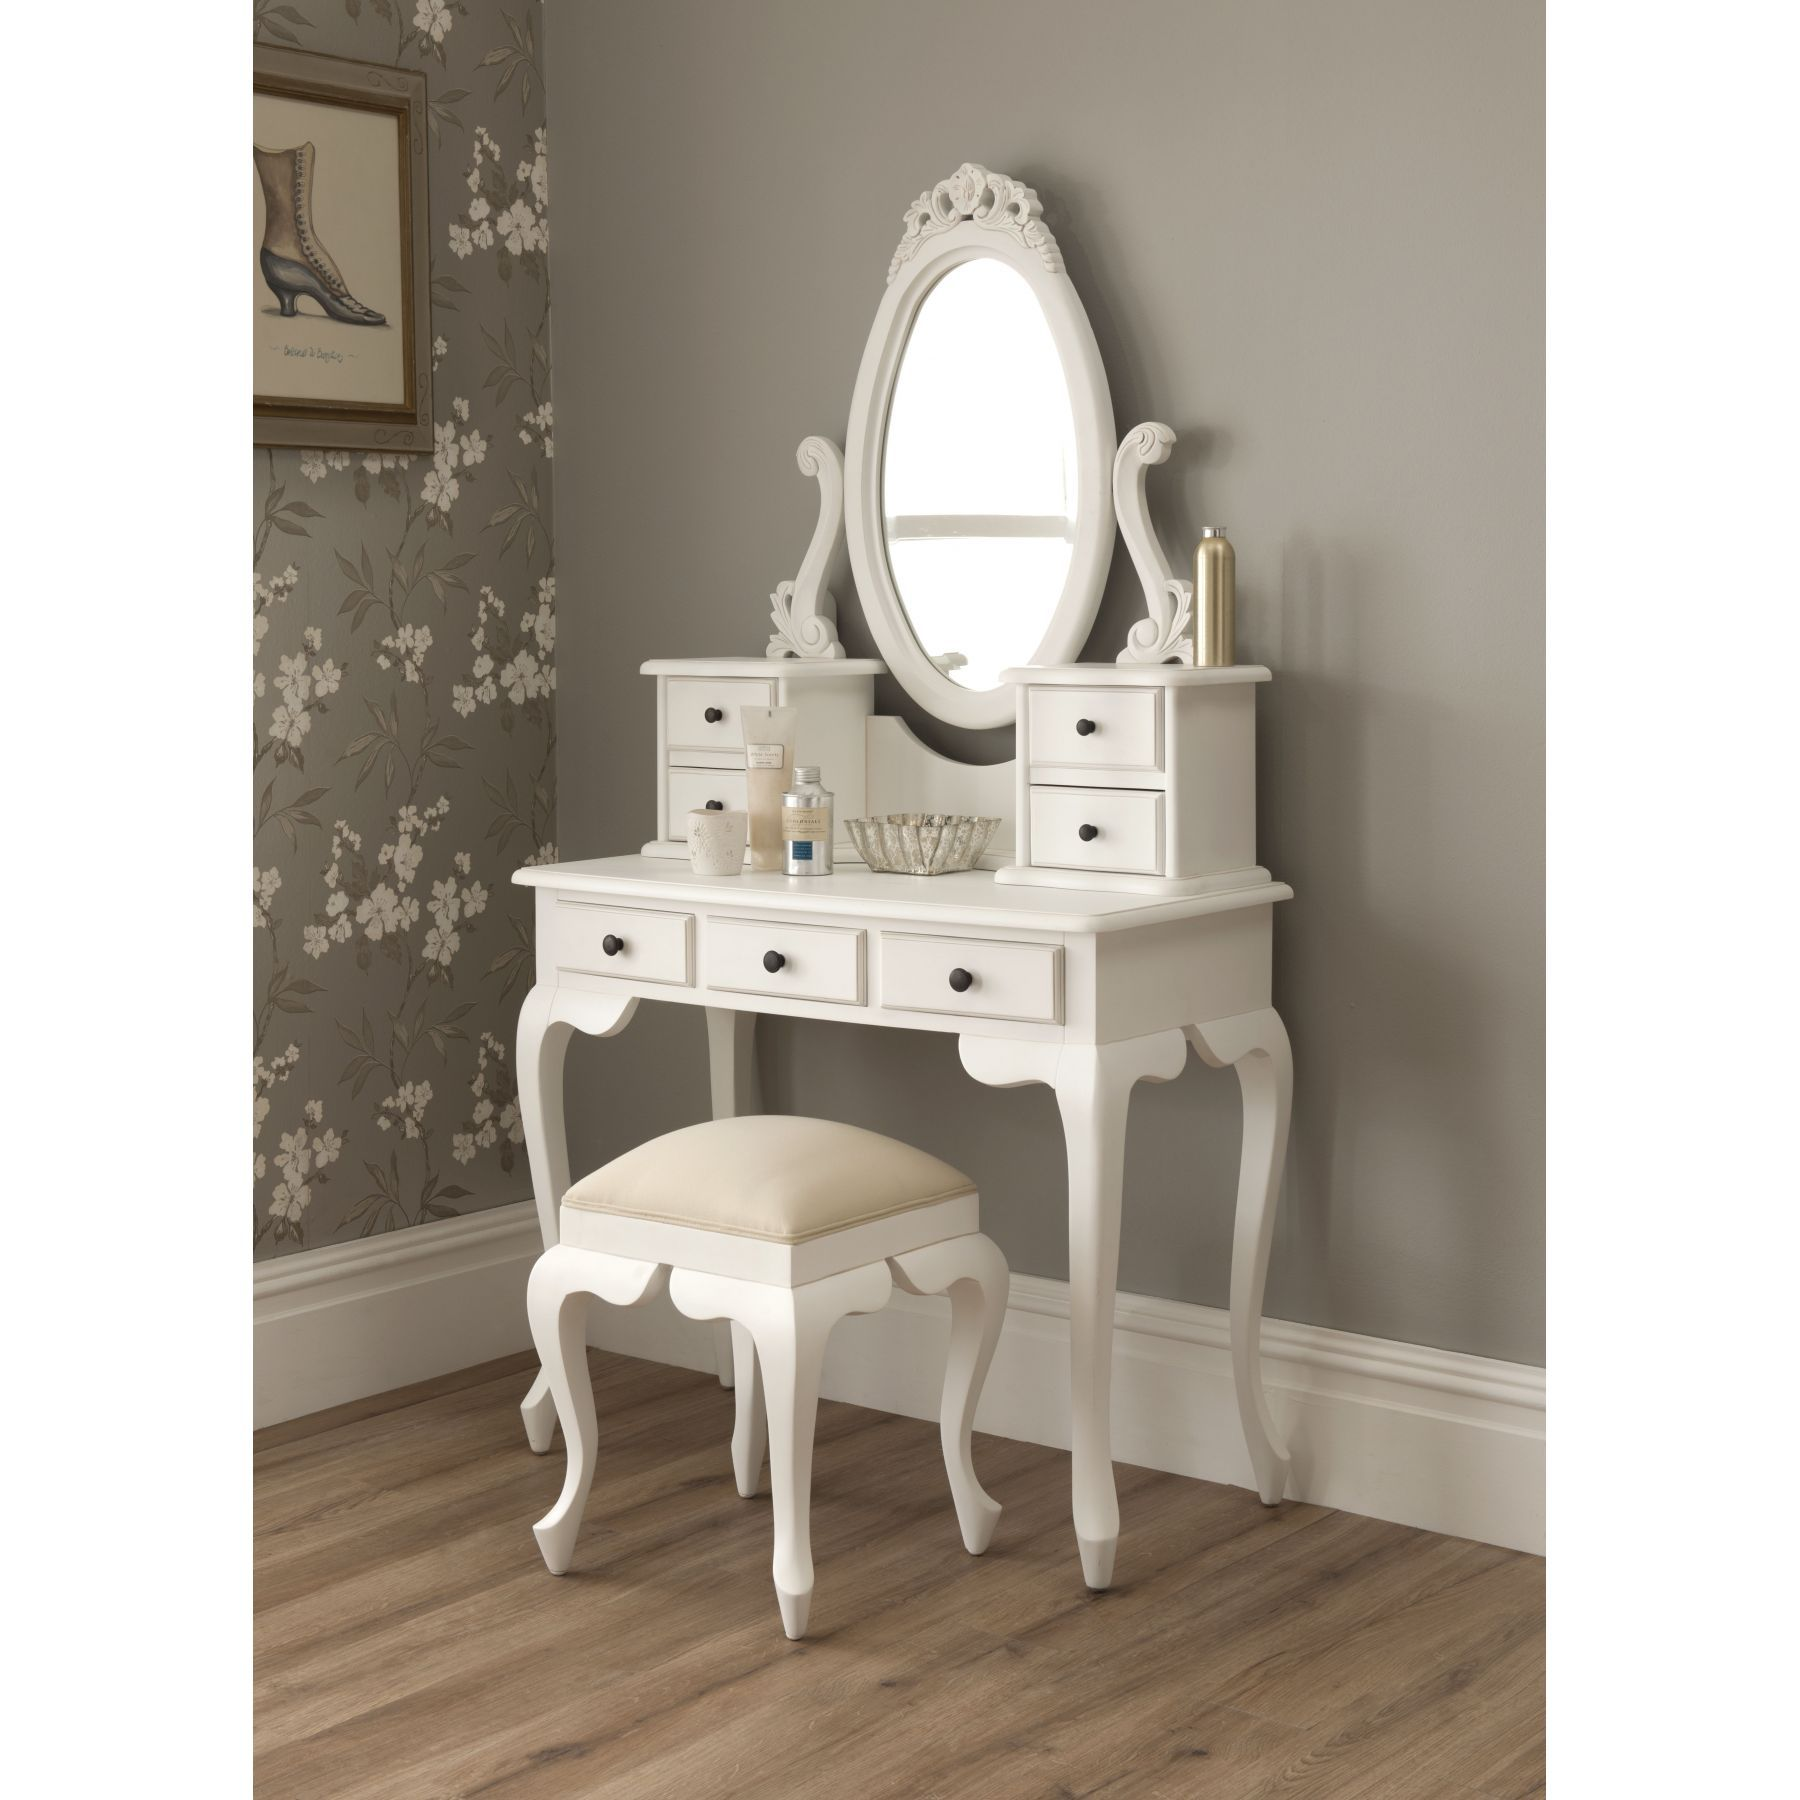 Bedroom furniture dressing table - Furniture Astounding Wood Flooring Master Bedroom Vanity Makeup Table Sets In White Wood Ikea Vanity Ideas Pimping Up Your Appearance